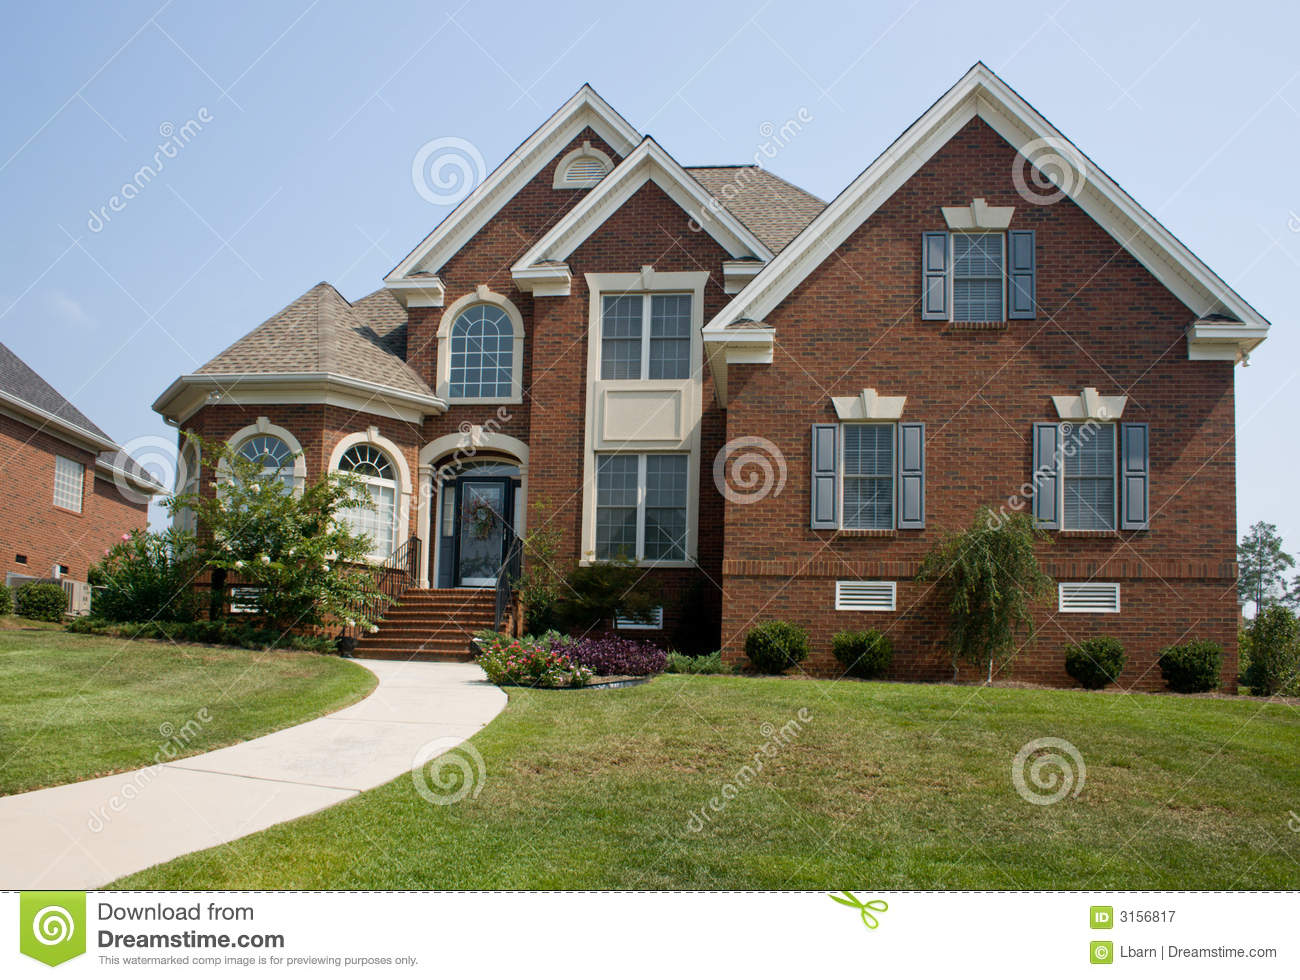 custom brick home stock image image of lawn architecture